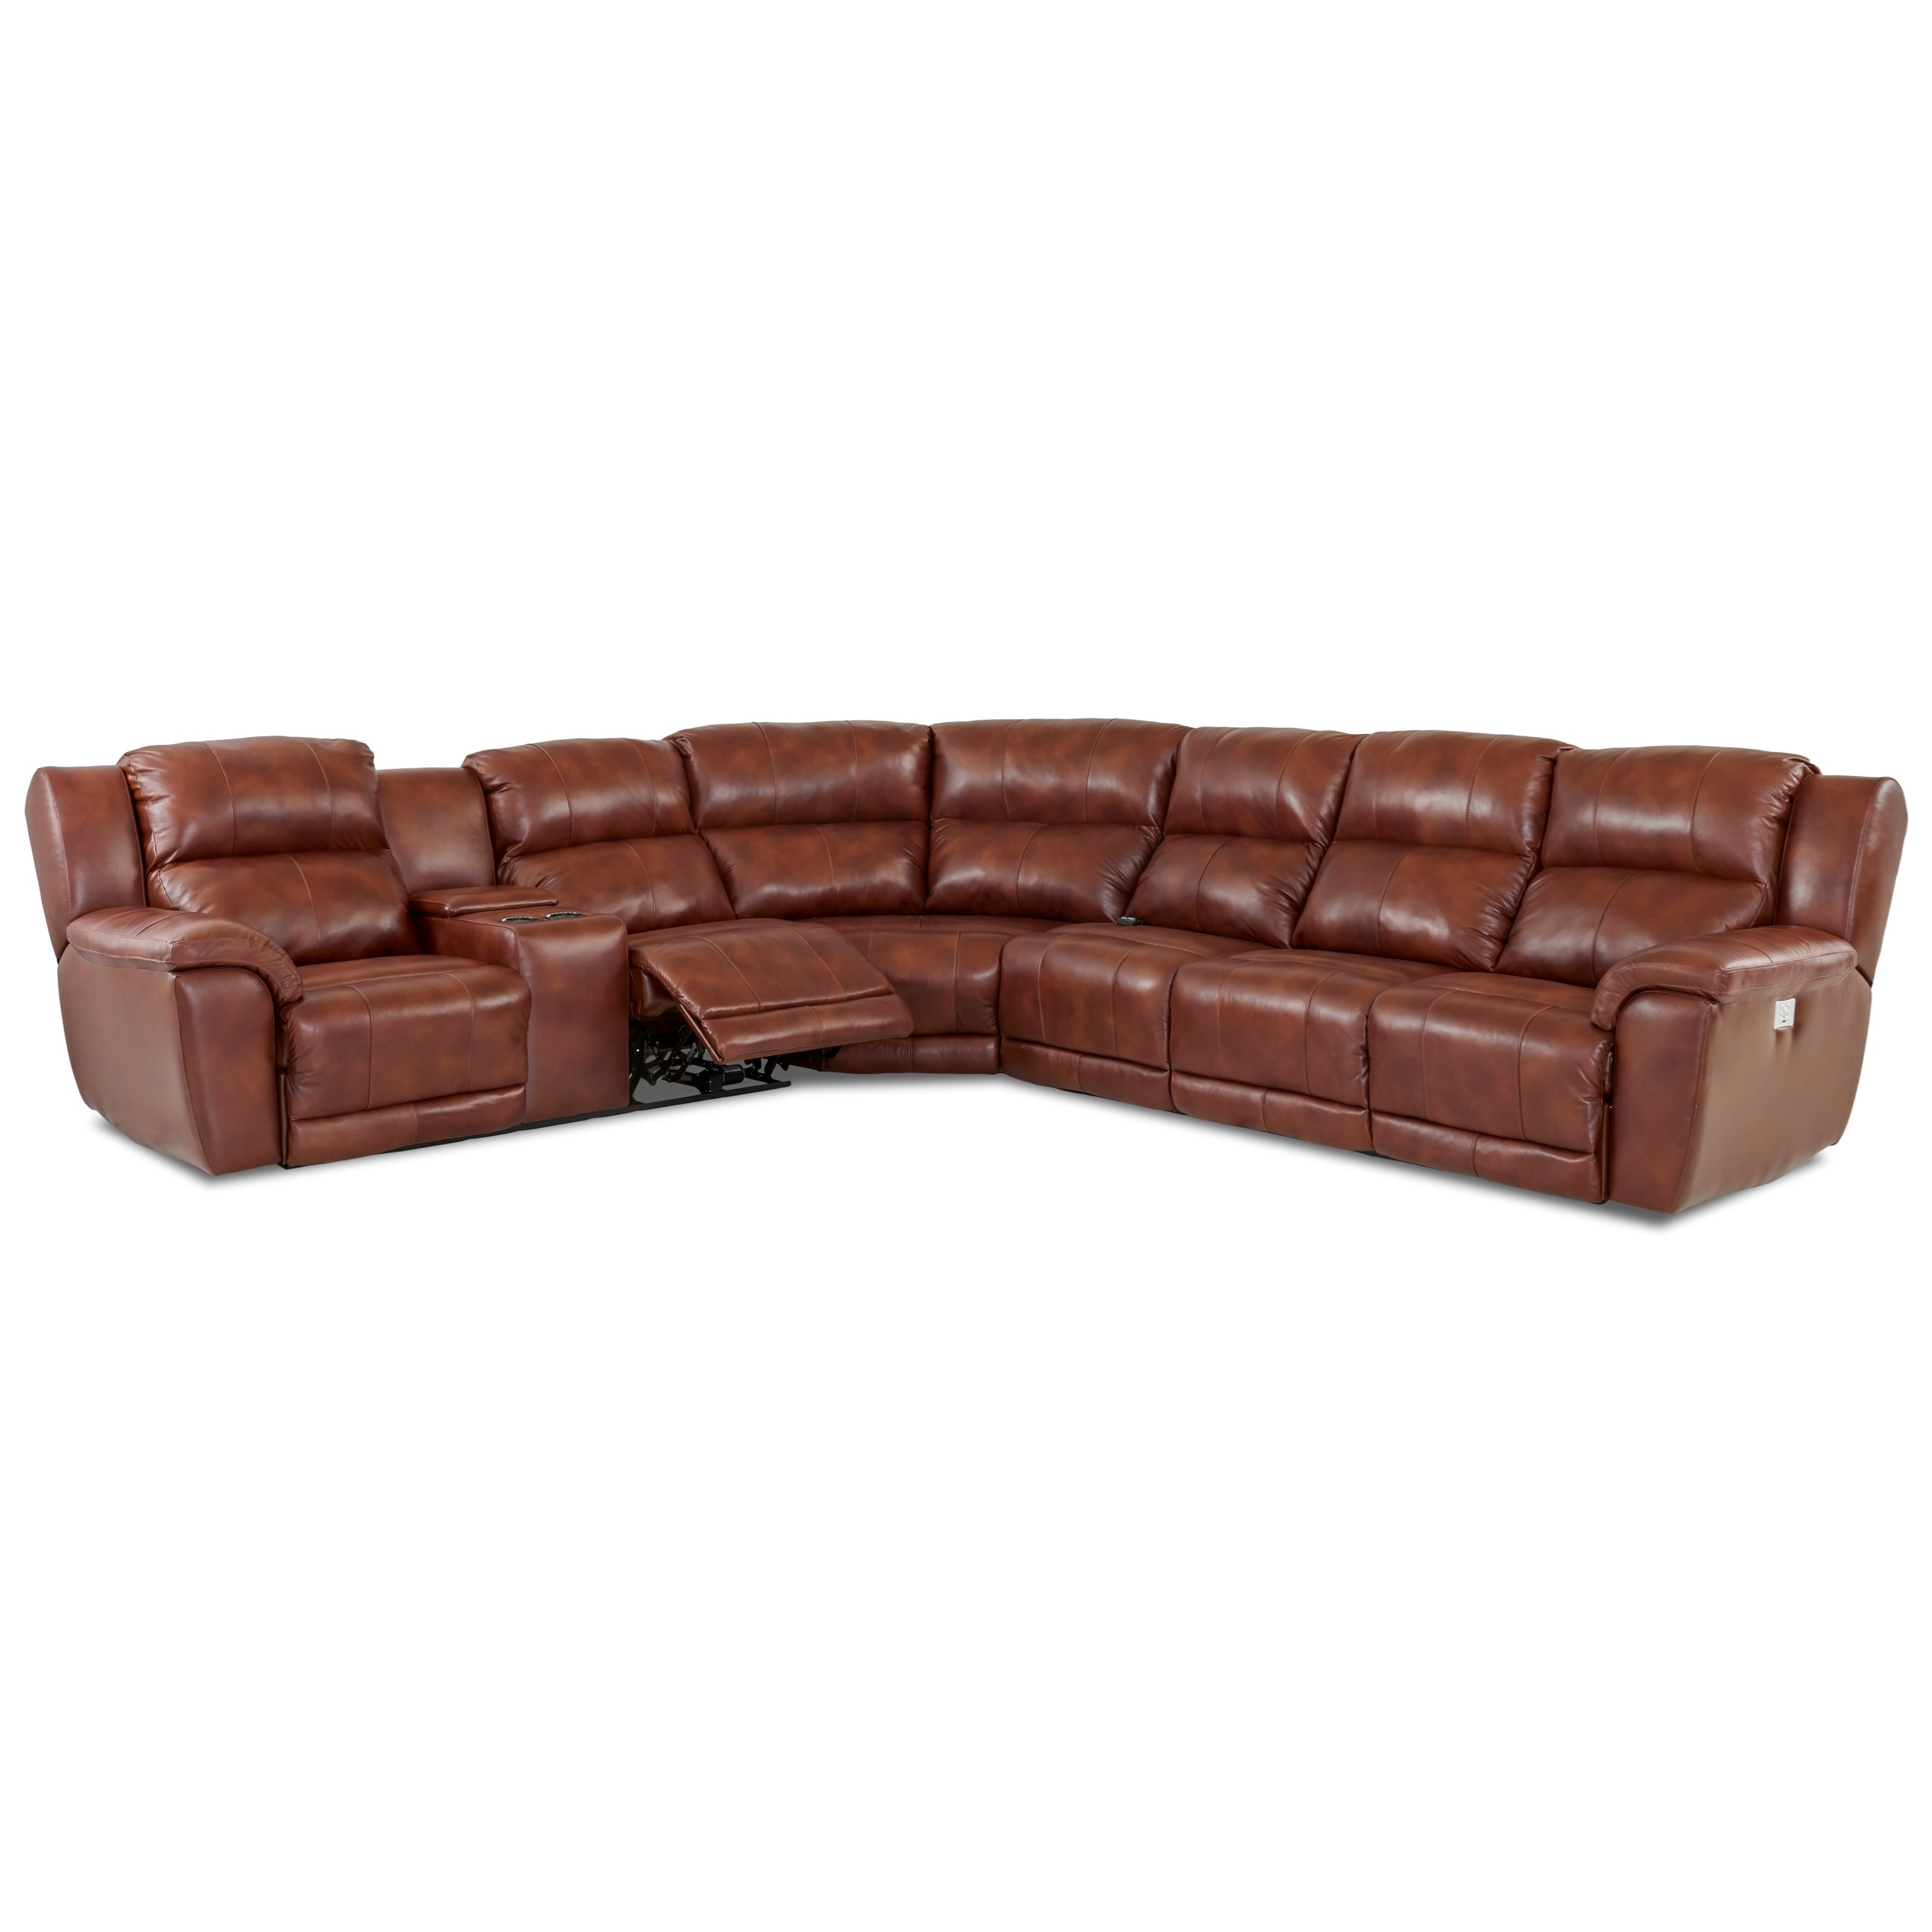 Klaussner Albus Four Piece Power Reclining Sectional Sofa